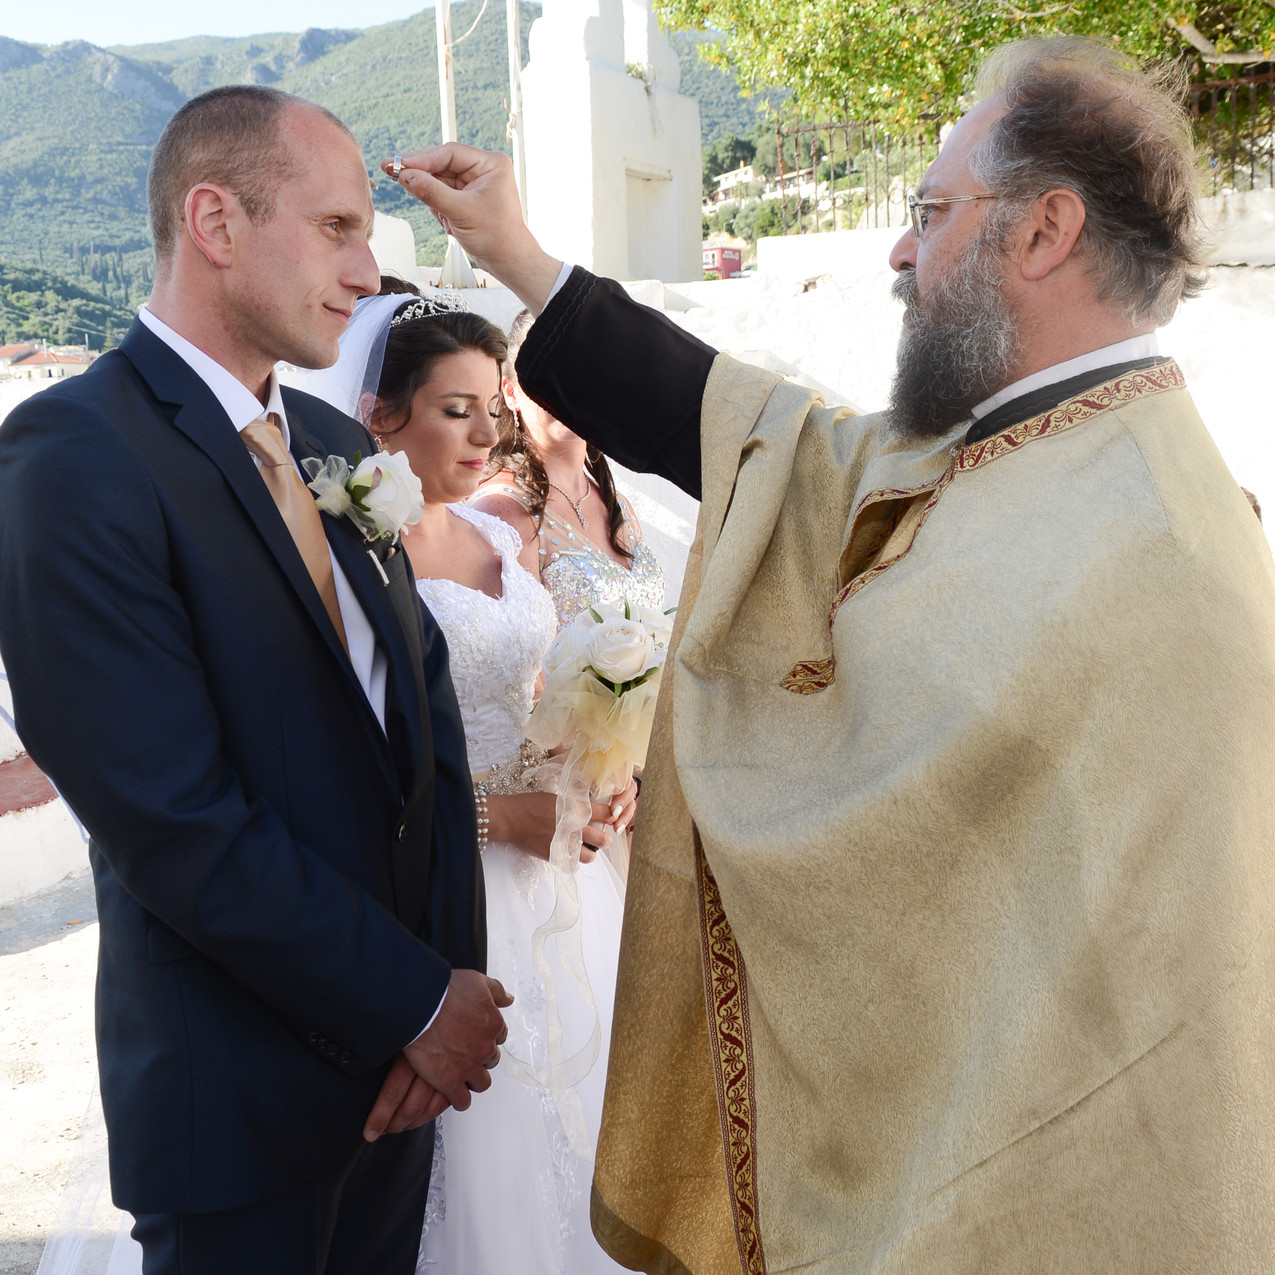 The blessing of the priest with the enga